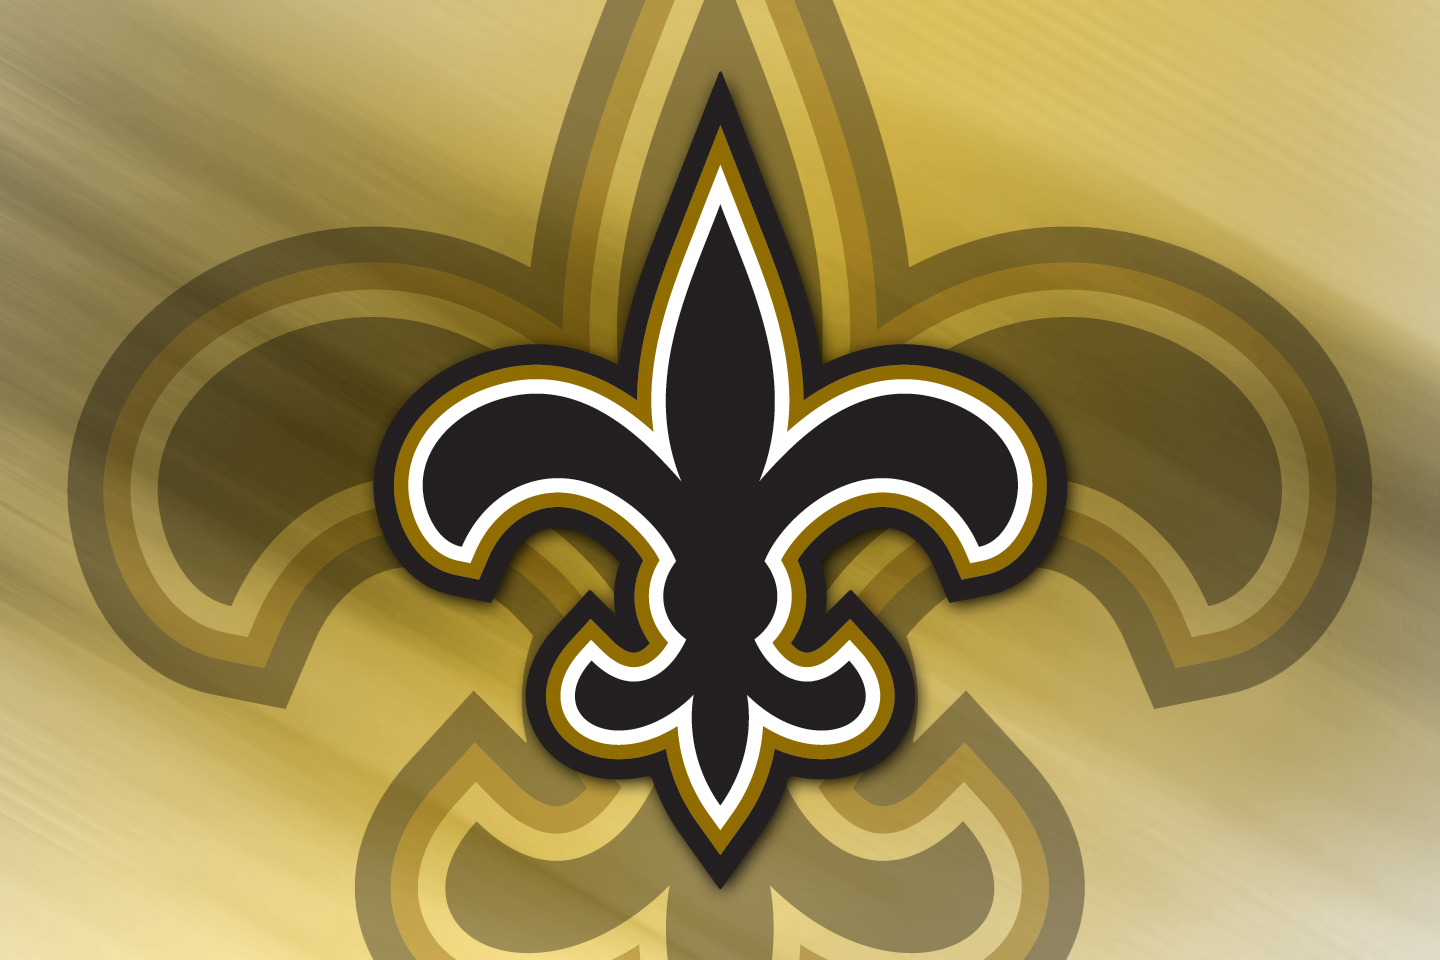 Tickle the wirenew orleans saints archives tickle the wire authorities no evidence saints eavesdropped on opposing teams buycottarizona Images